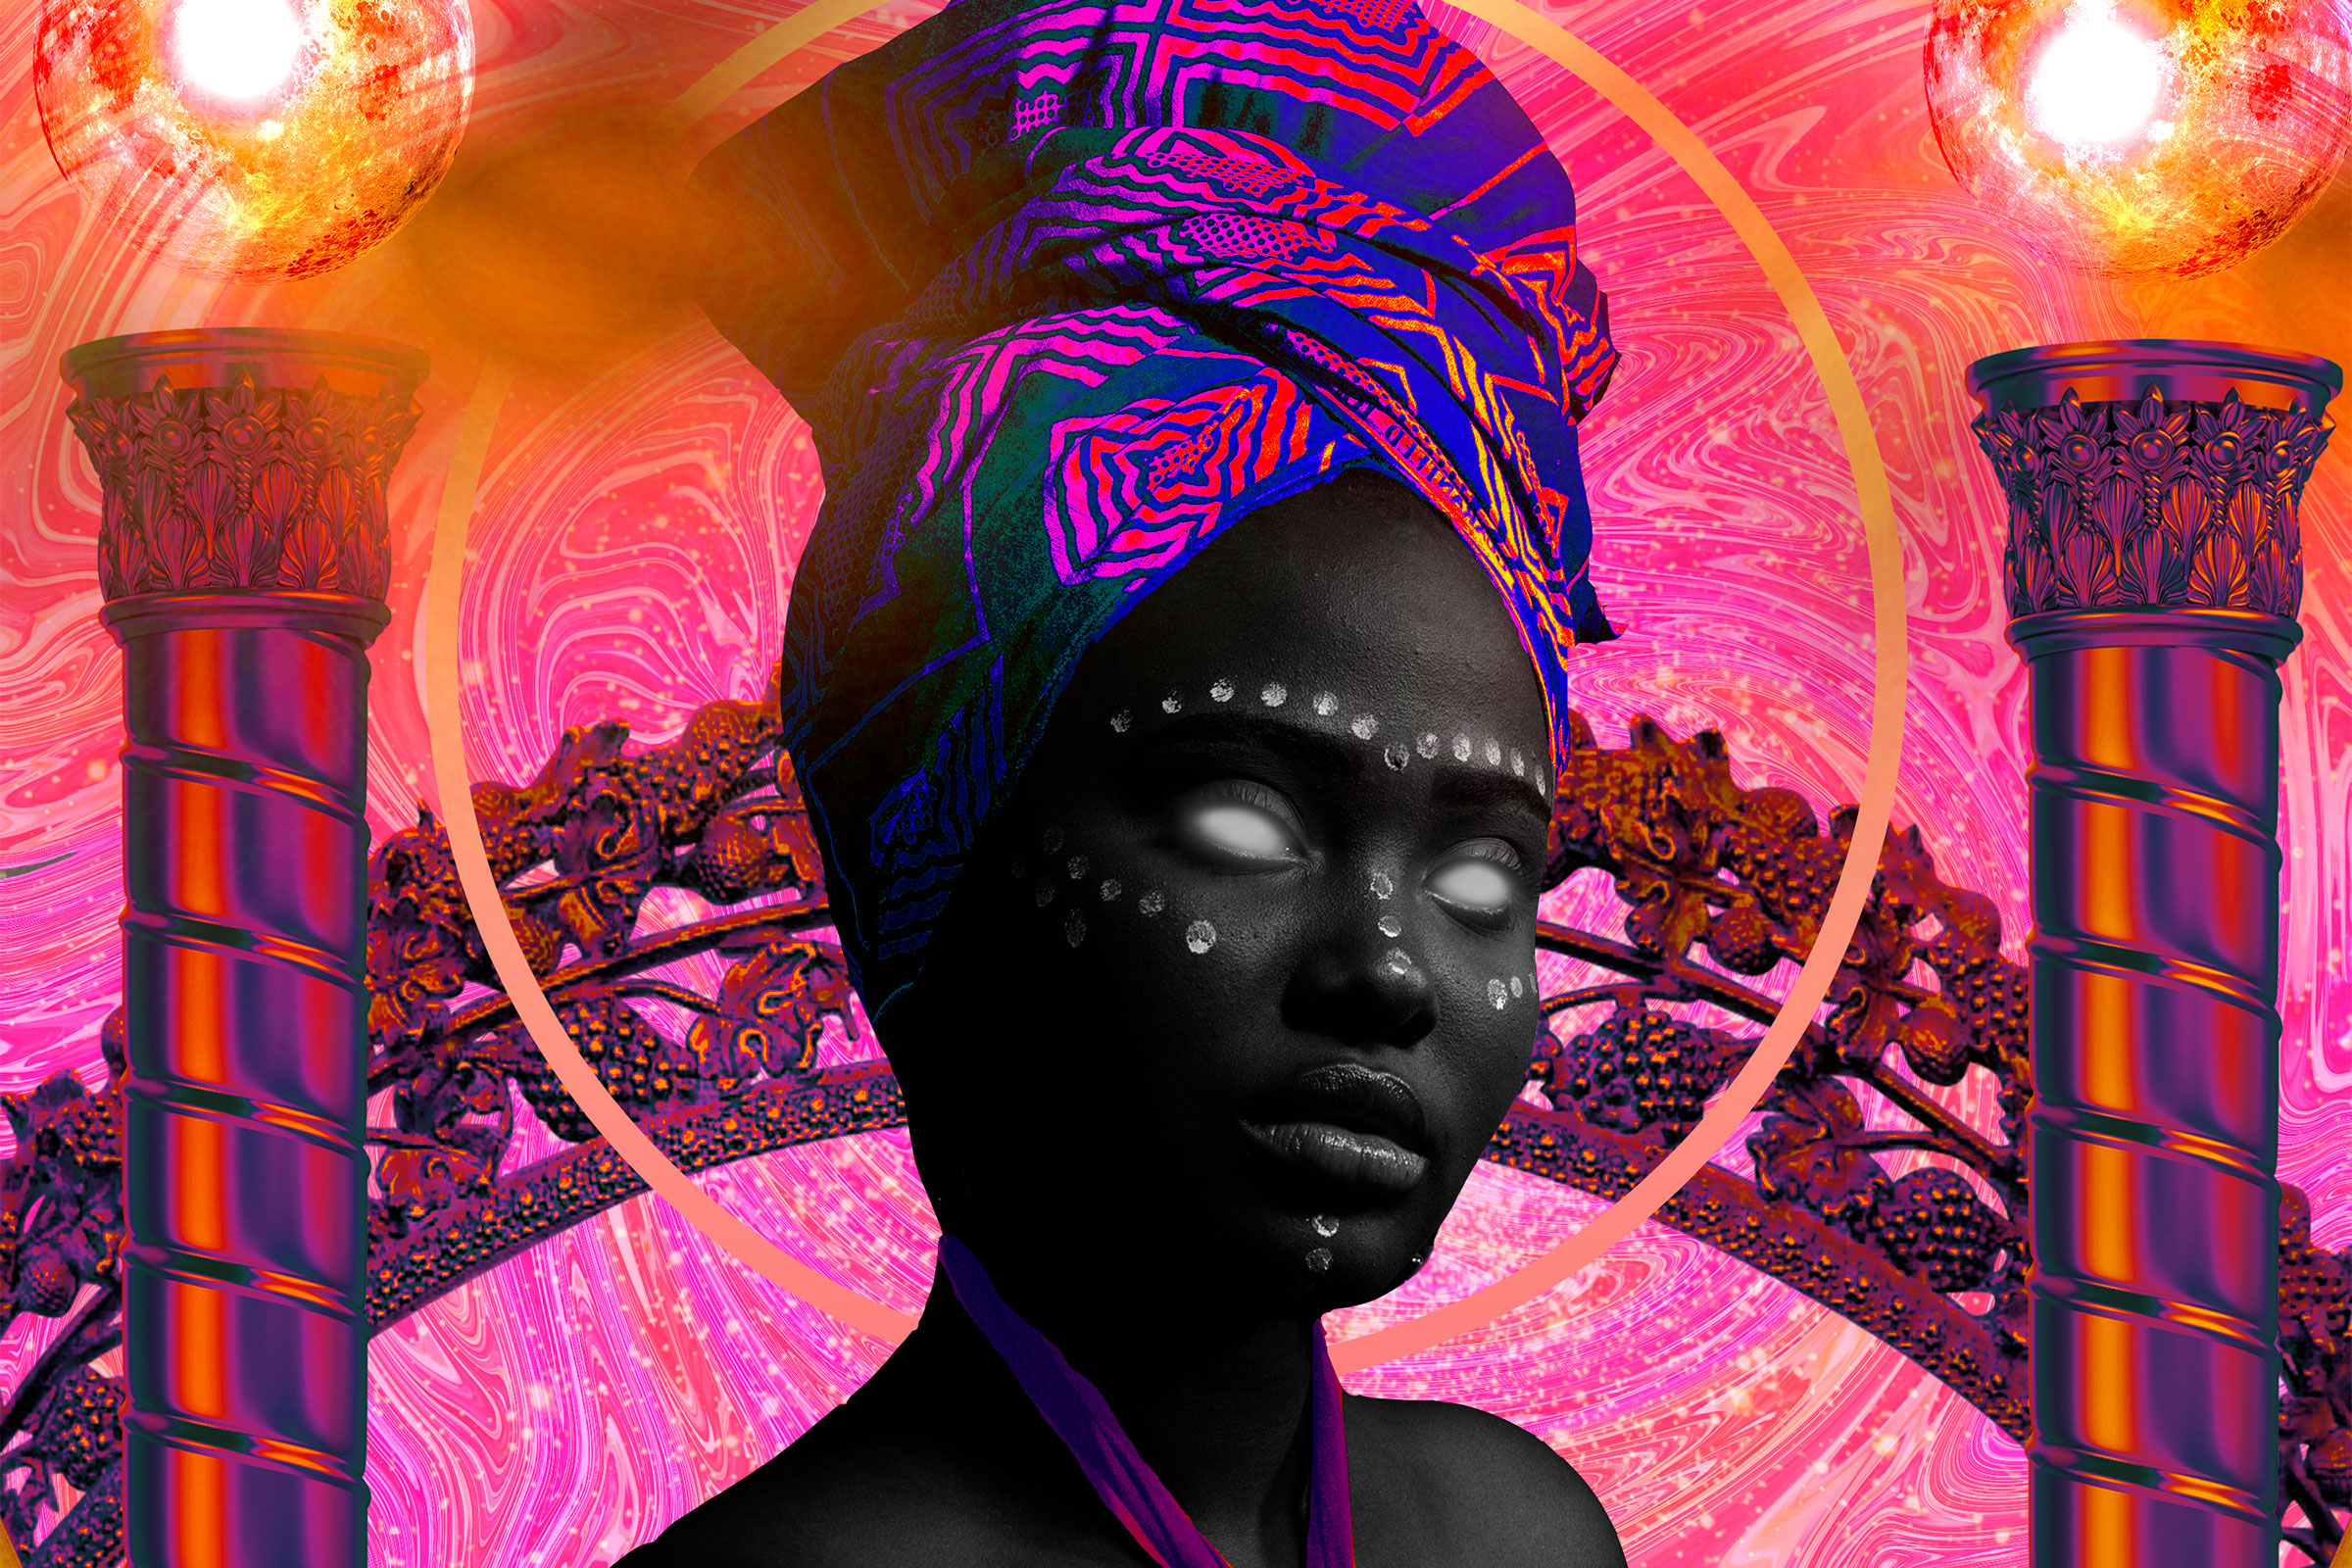 Black woman with white eyes wearing an African headdress in a pink futuristic collaged world